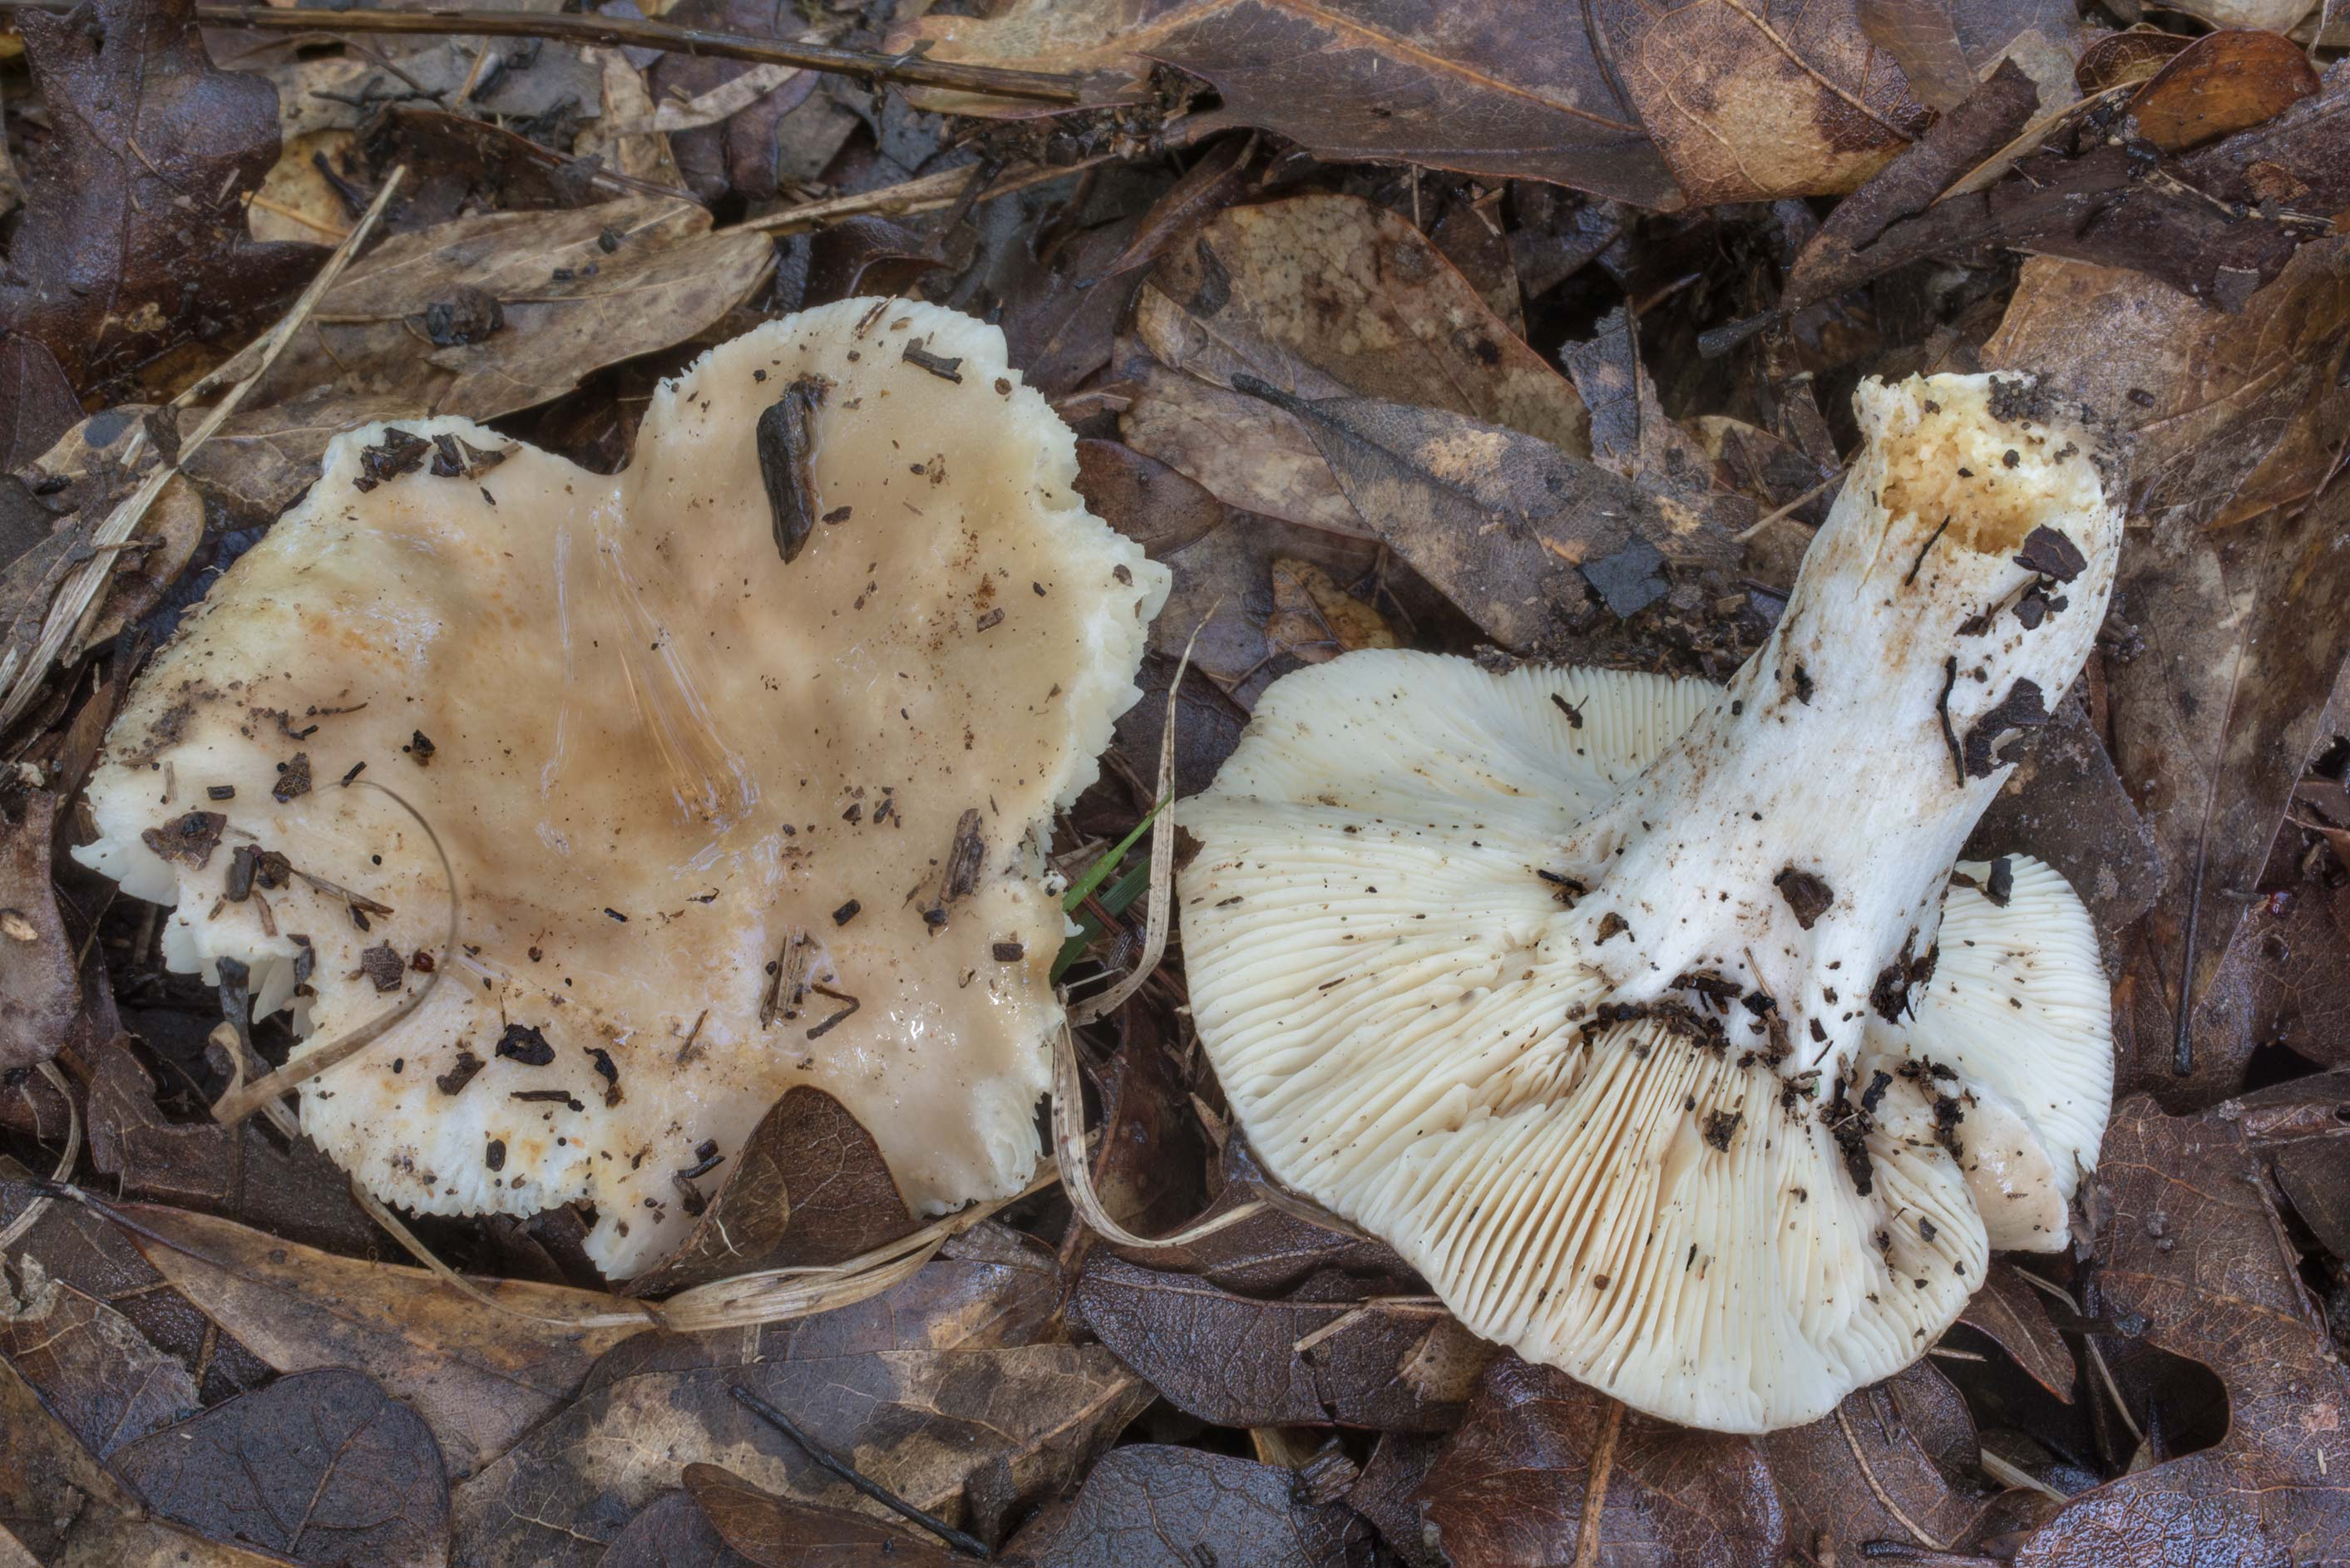 Pale brown brittlegill (Russula) mushrooms in Lick Creek Park. College Station, Texas